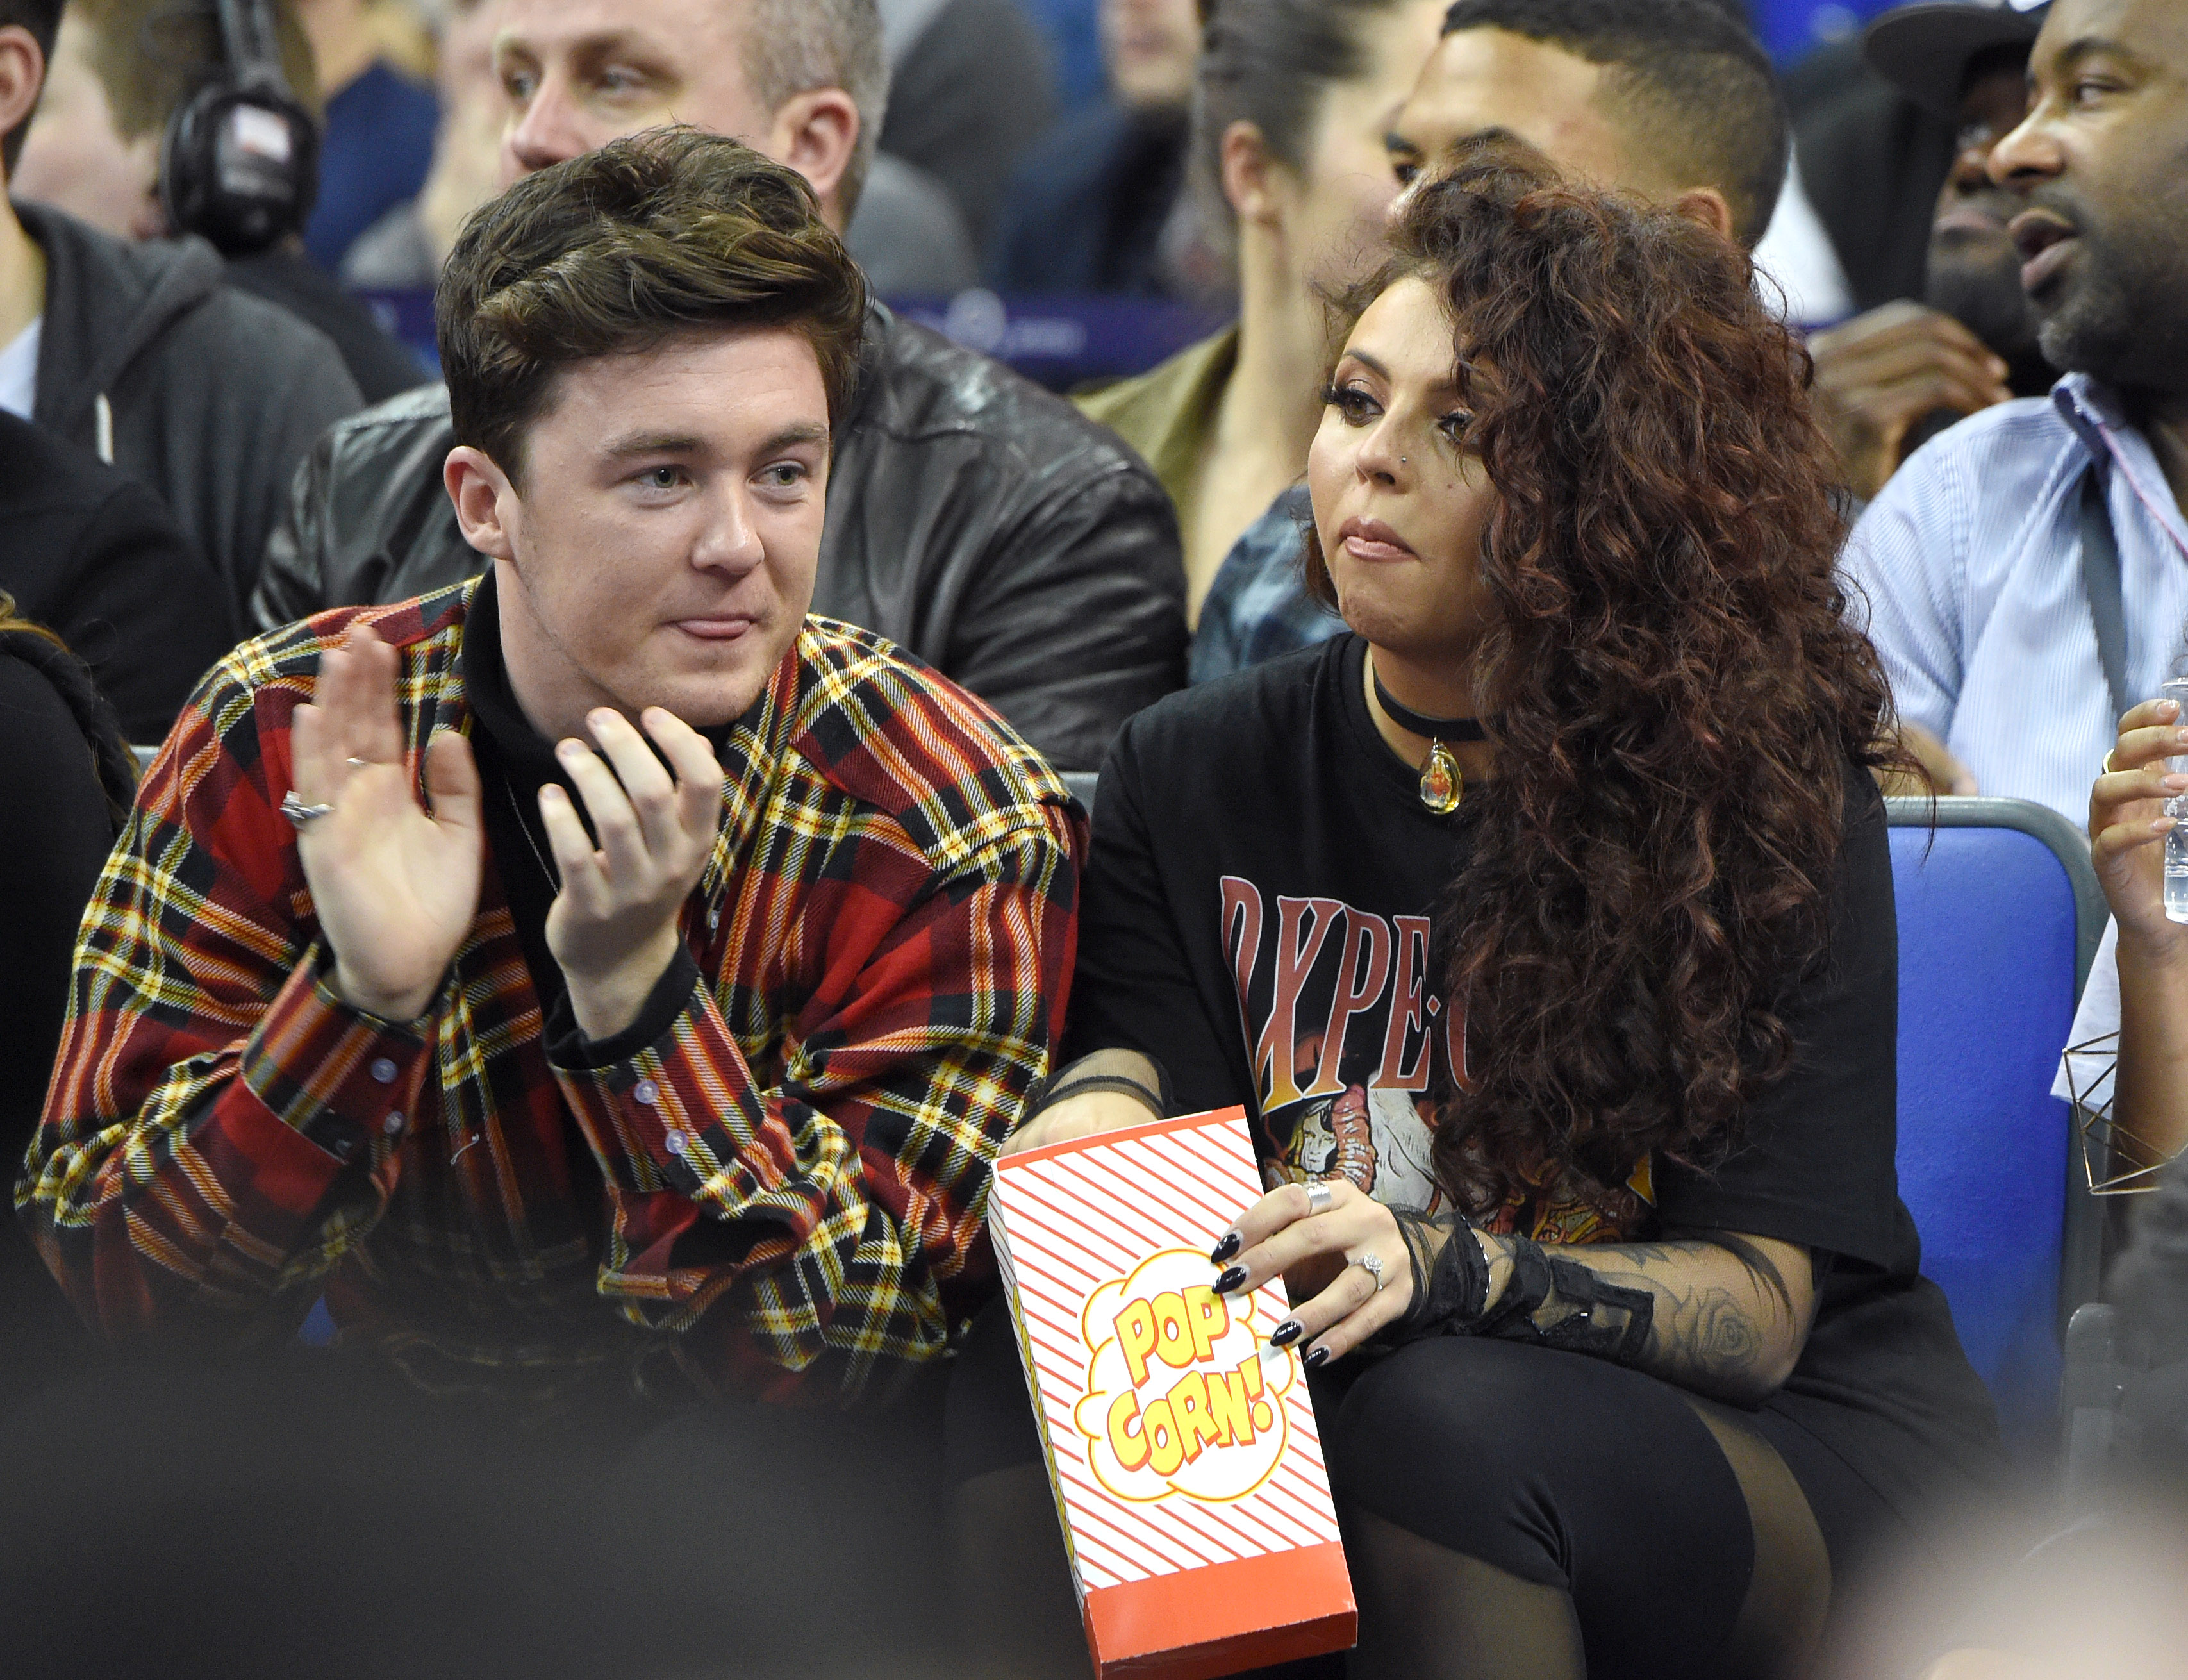 Jesy Nelson and Jake Roche have been engaged since 2015 (Picture: Karwai Tang/WireImage)